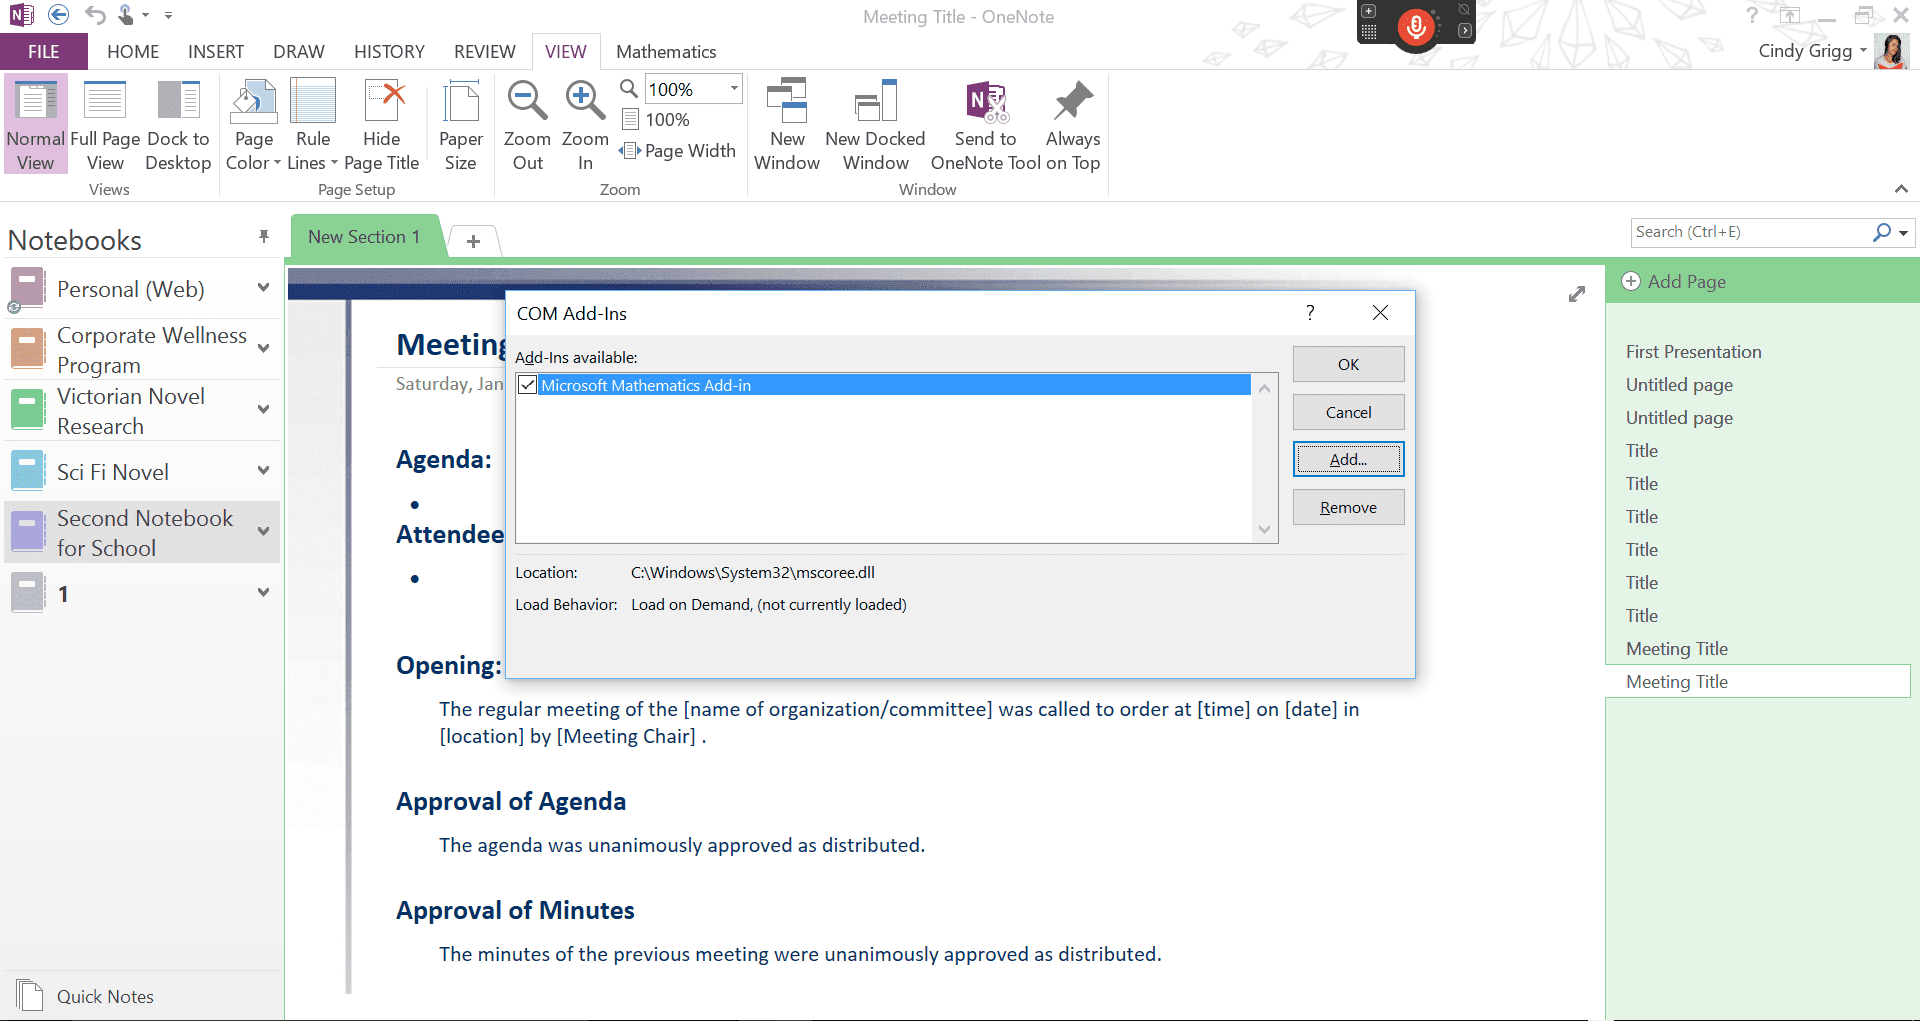 Adding or getting rid of add-ins in Microsoft OneNote